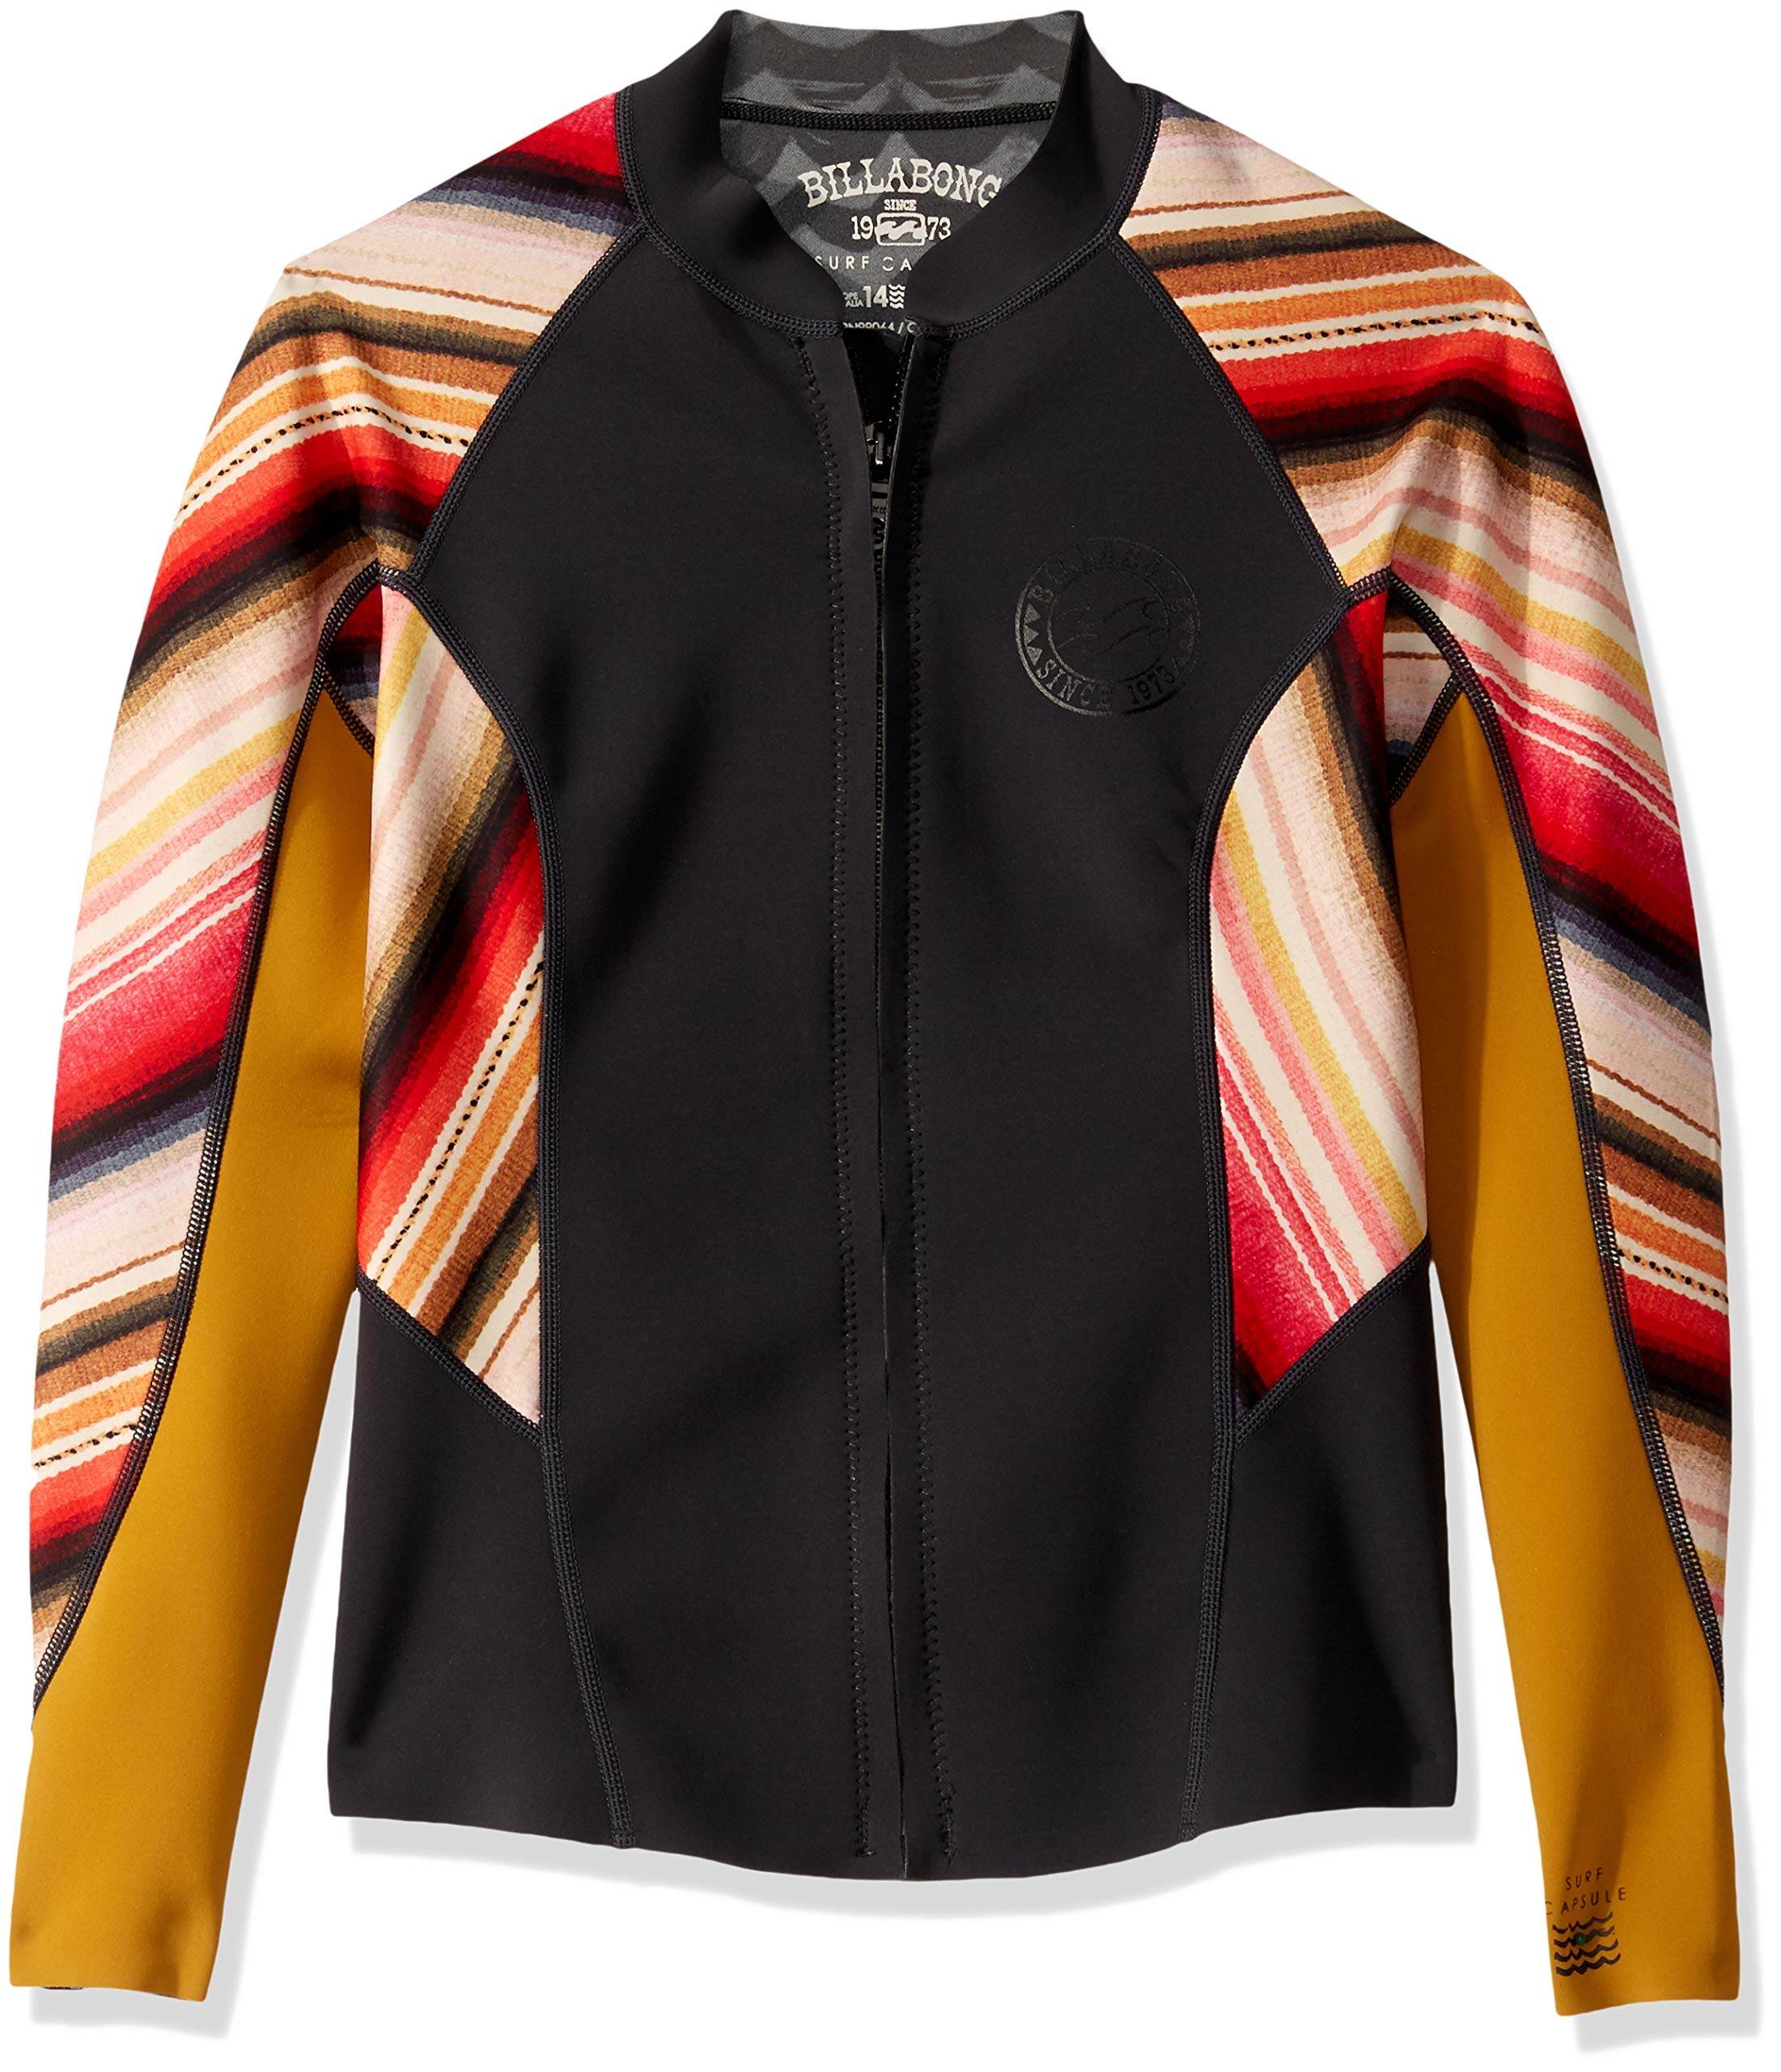 Billabong Women's Peeky Wetsuit Jacket, Serape, 6 by Billabong